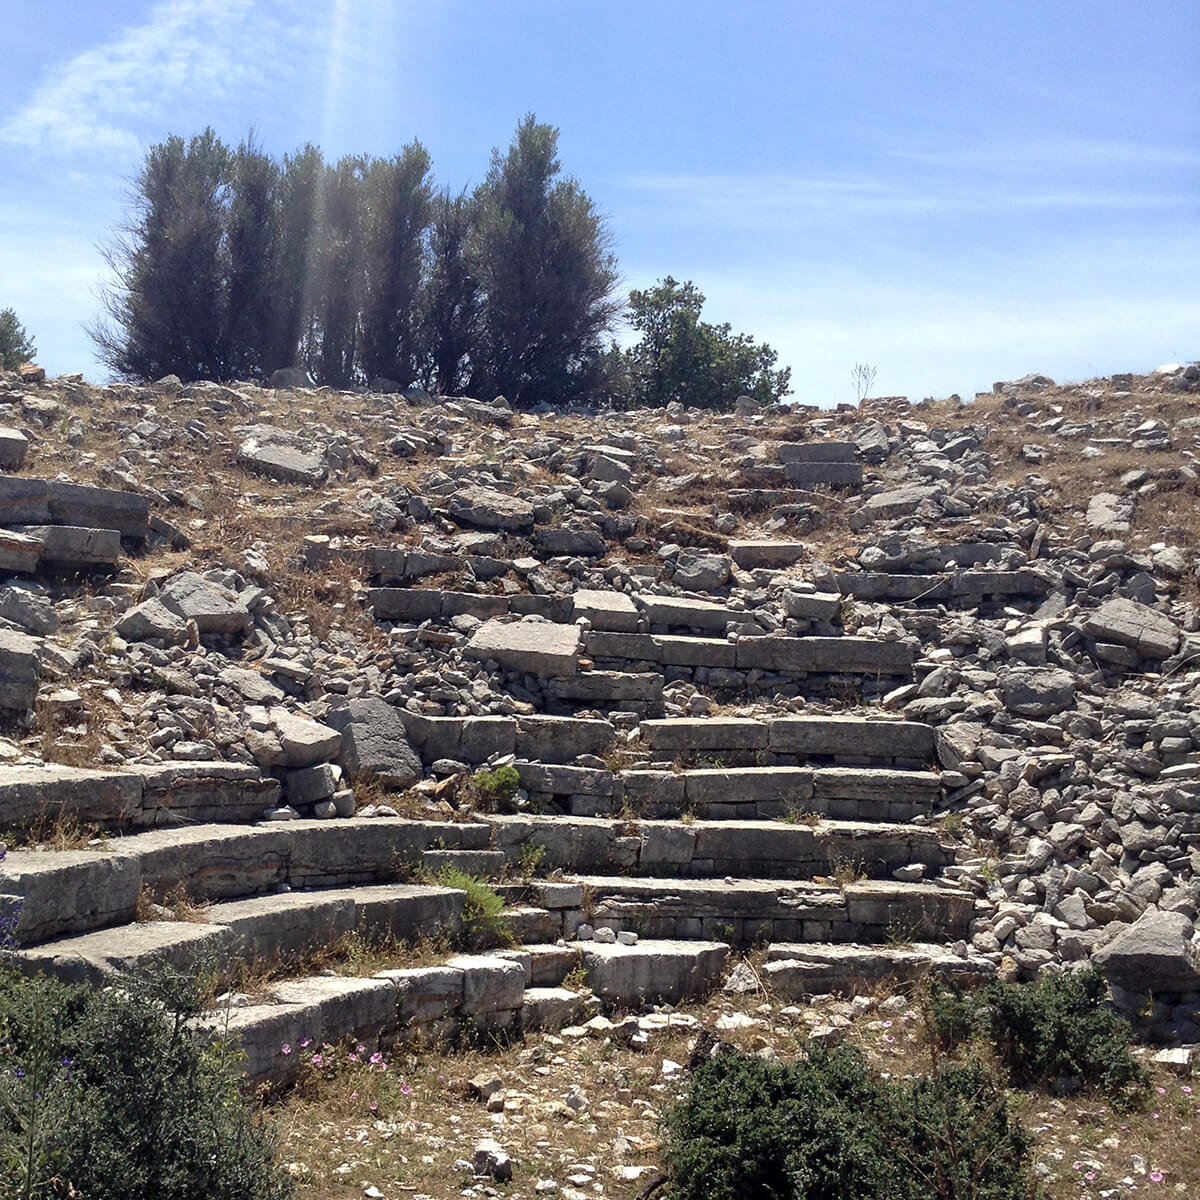 Amphitheater ruins in Amos